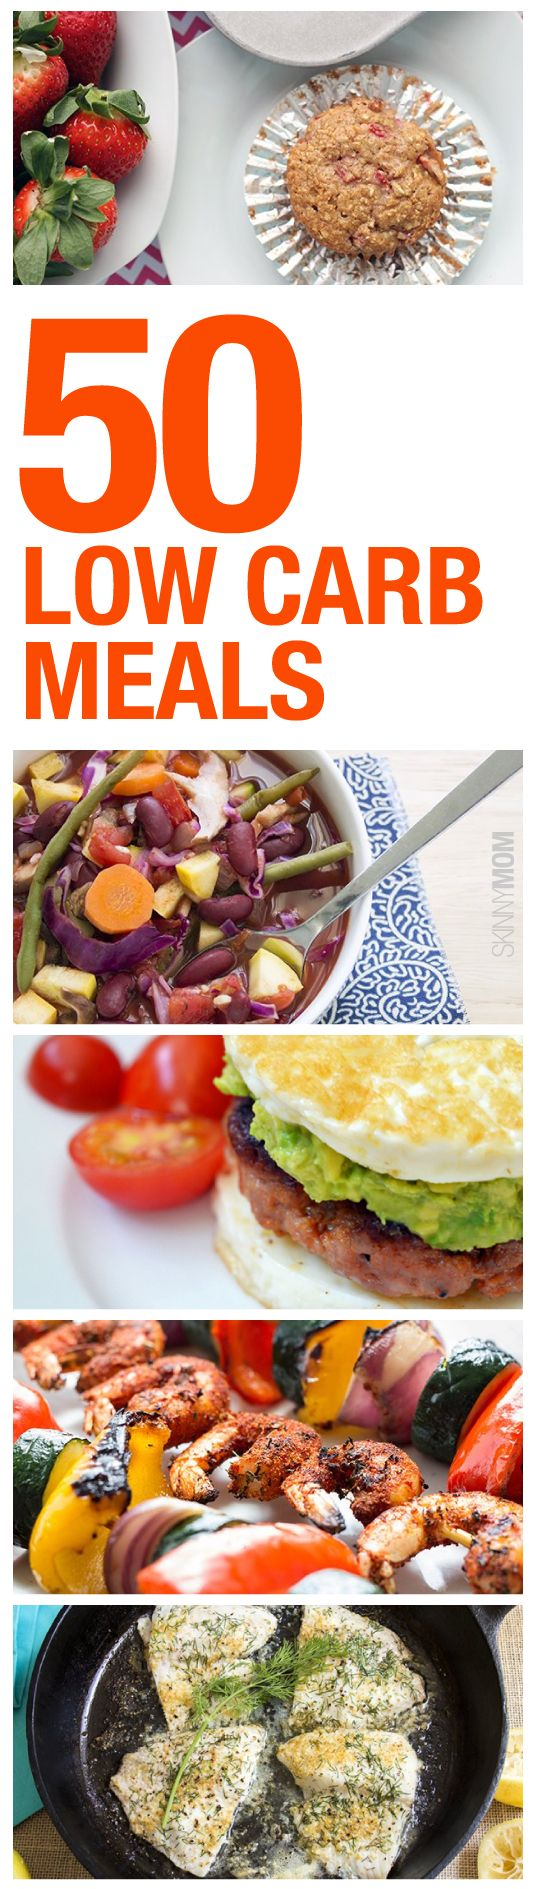 Watching your carb intake? Check out these 50 low carb breakfasts, lunch dinner, and snack options.